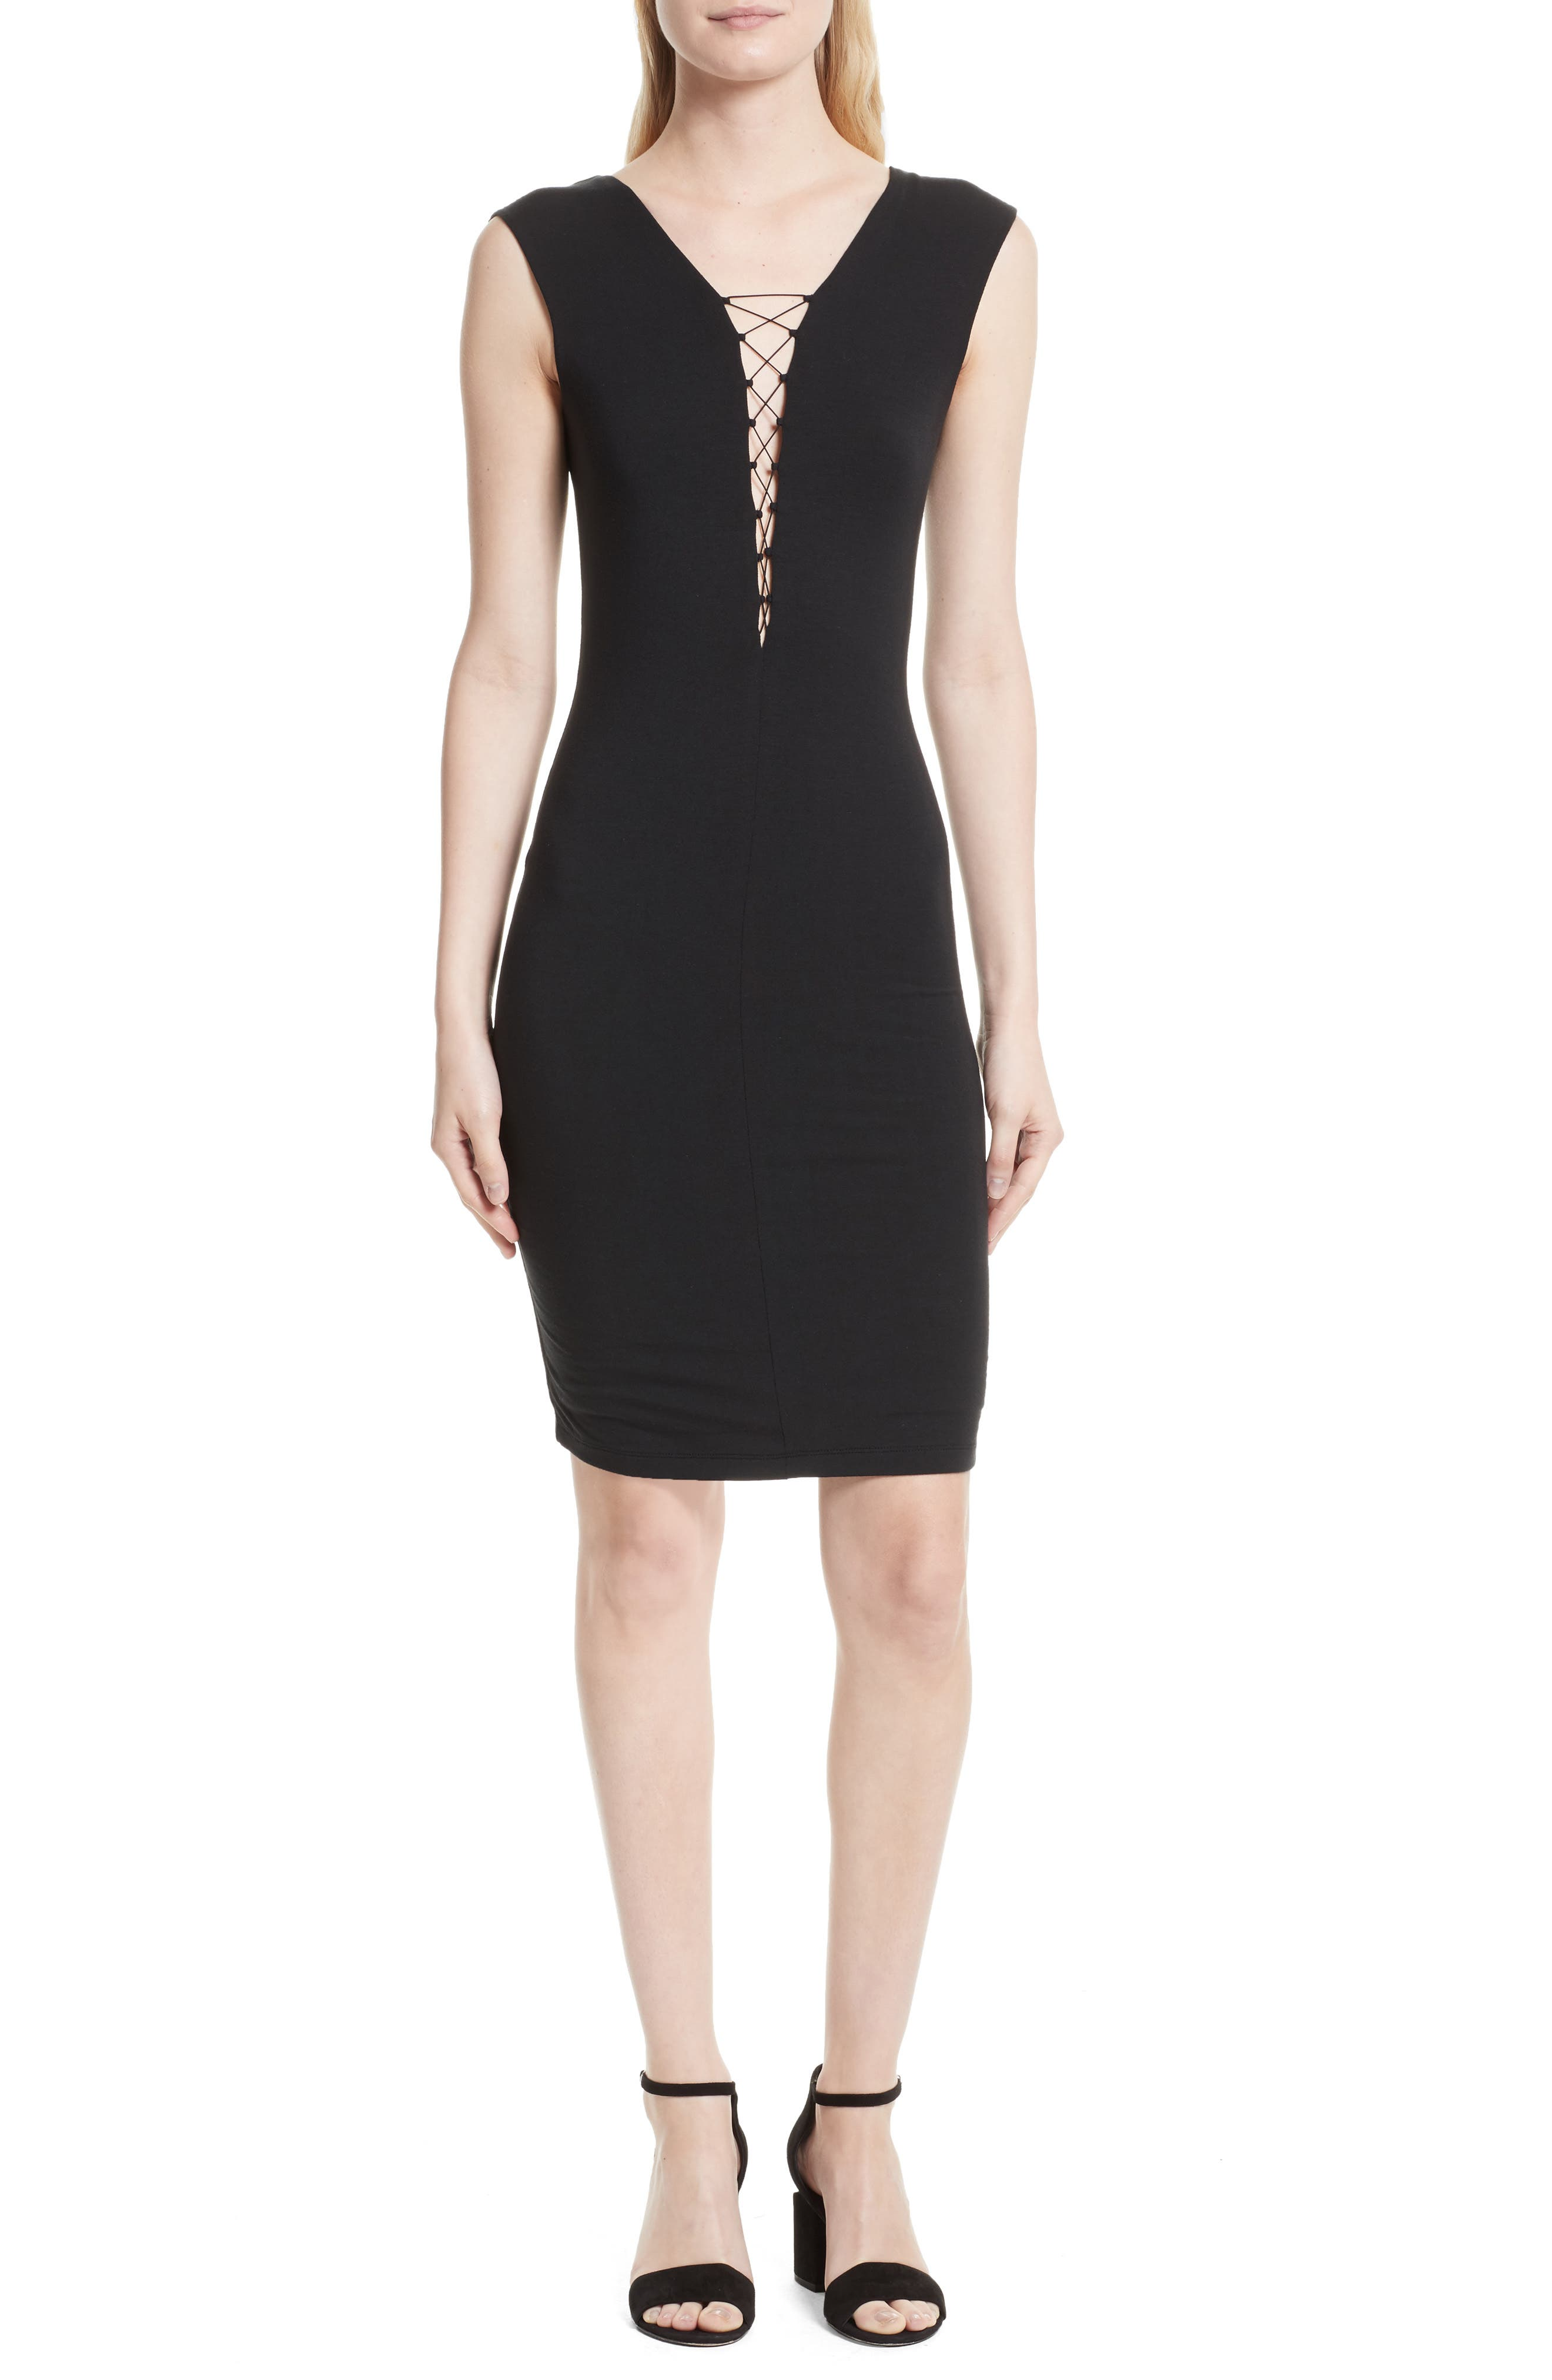 Alexander Wang Lace-Up Dress (Nordstrom Exclusive)